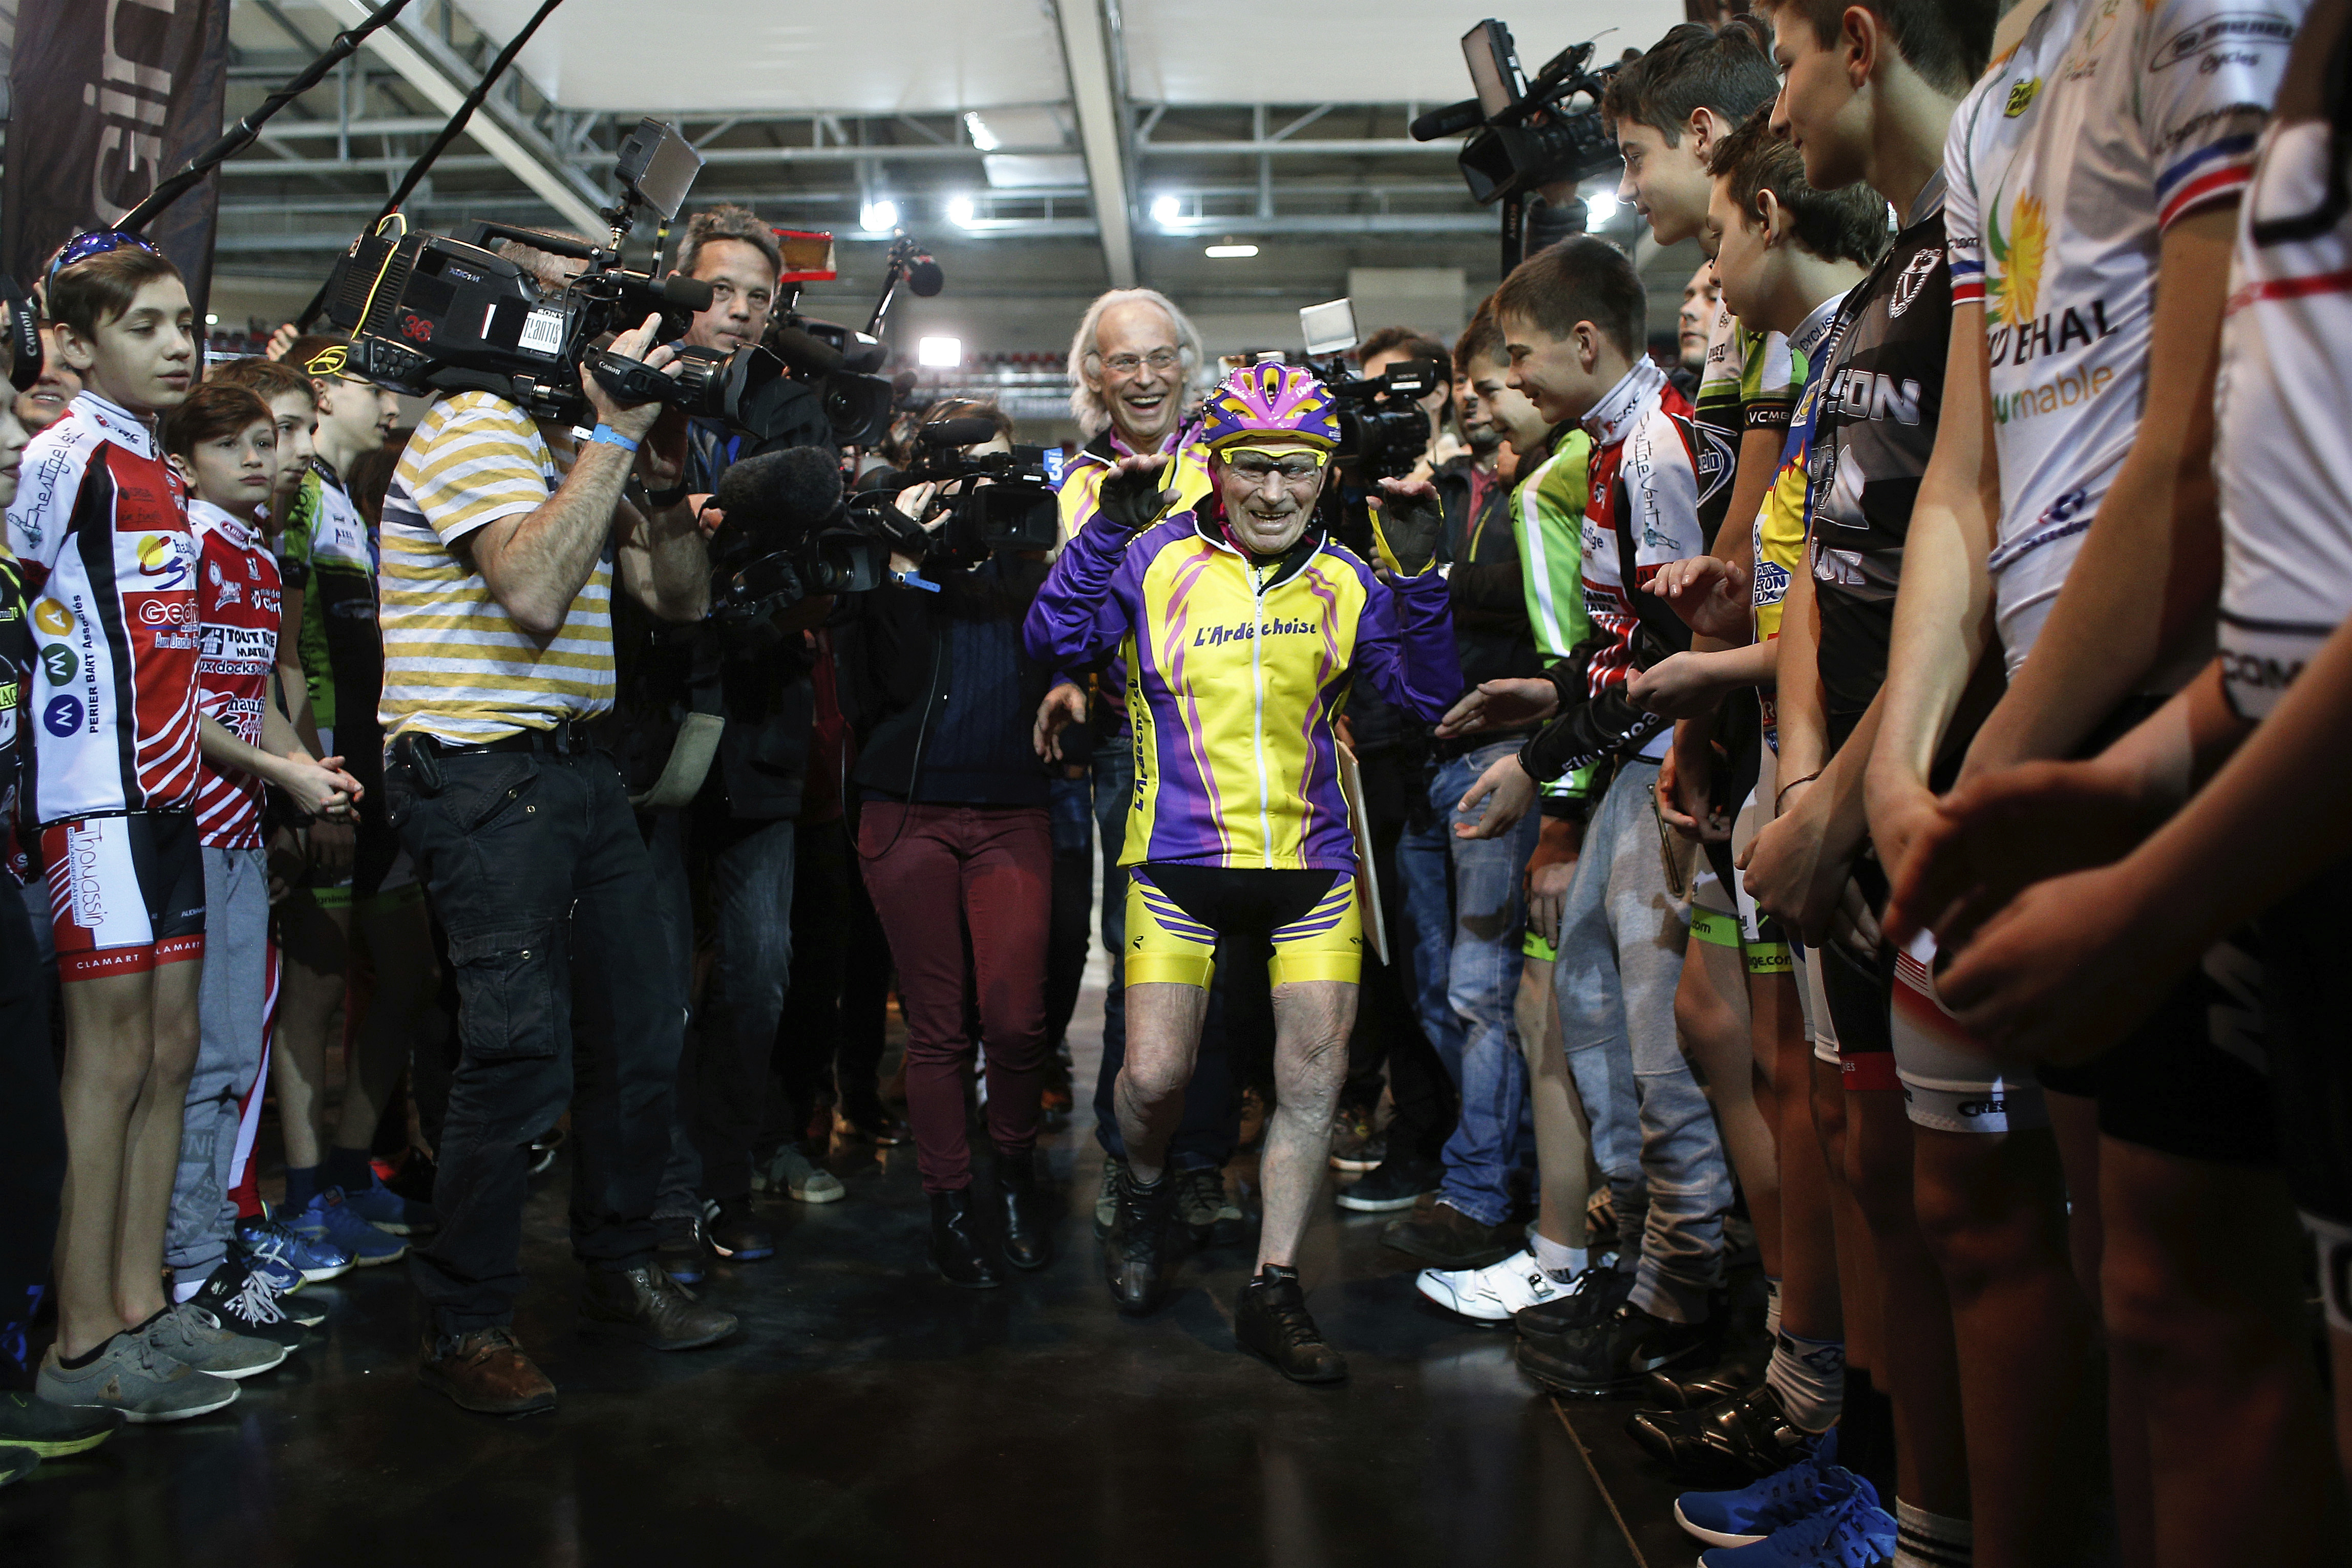 French cyclist Robert Marchand, aged 105, arrives prior to cycle in a bid to beat his record for distance cycled in one hour, at the velodrome of Saint-Quentin en Yvelines, outside Paris on Jan. 4, 2017. (AP Photo/Thibault Camus)